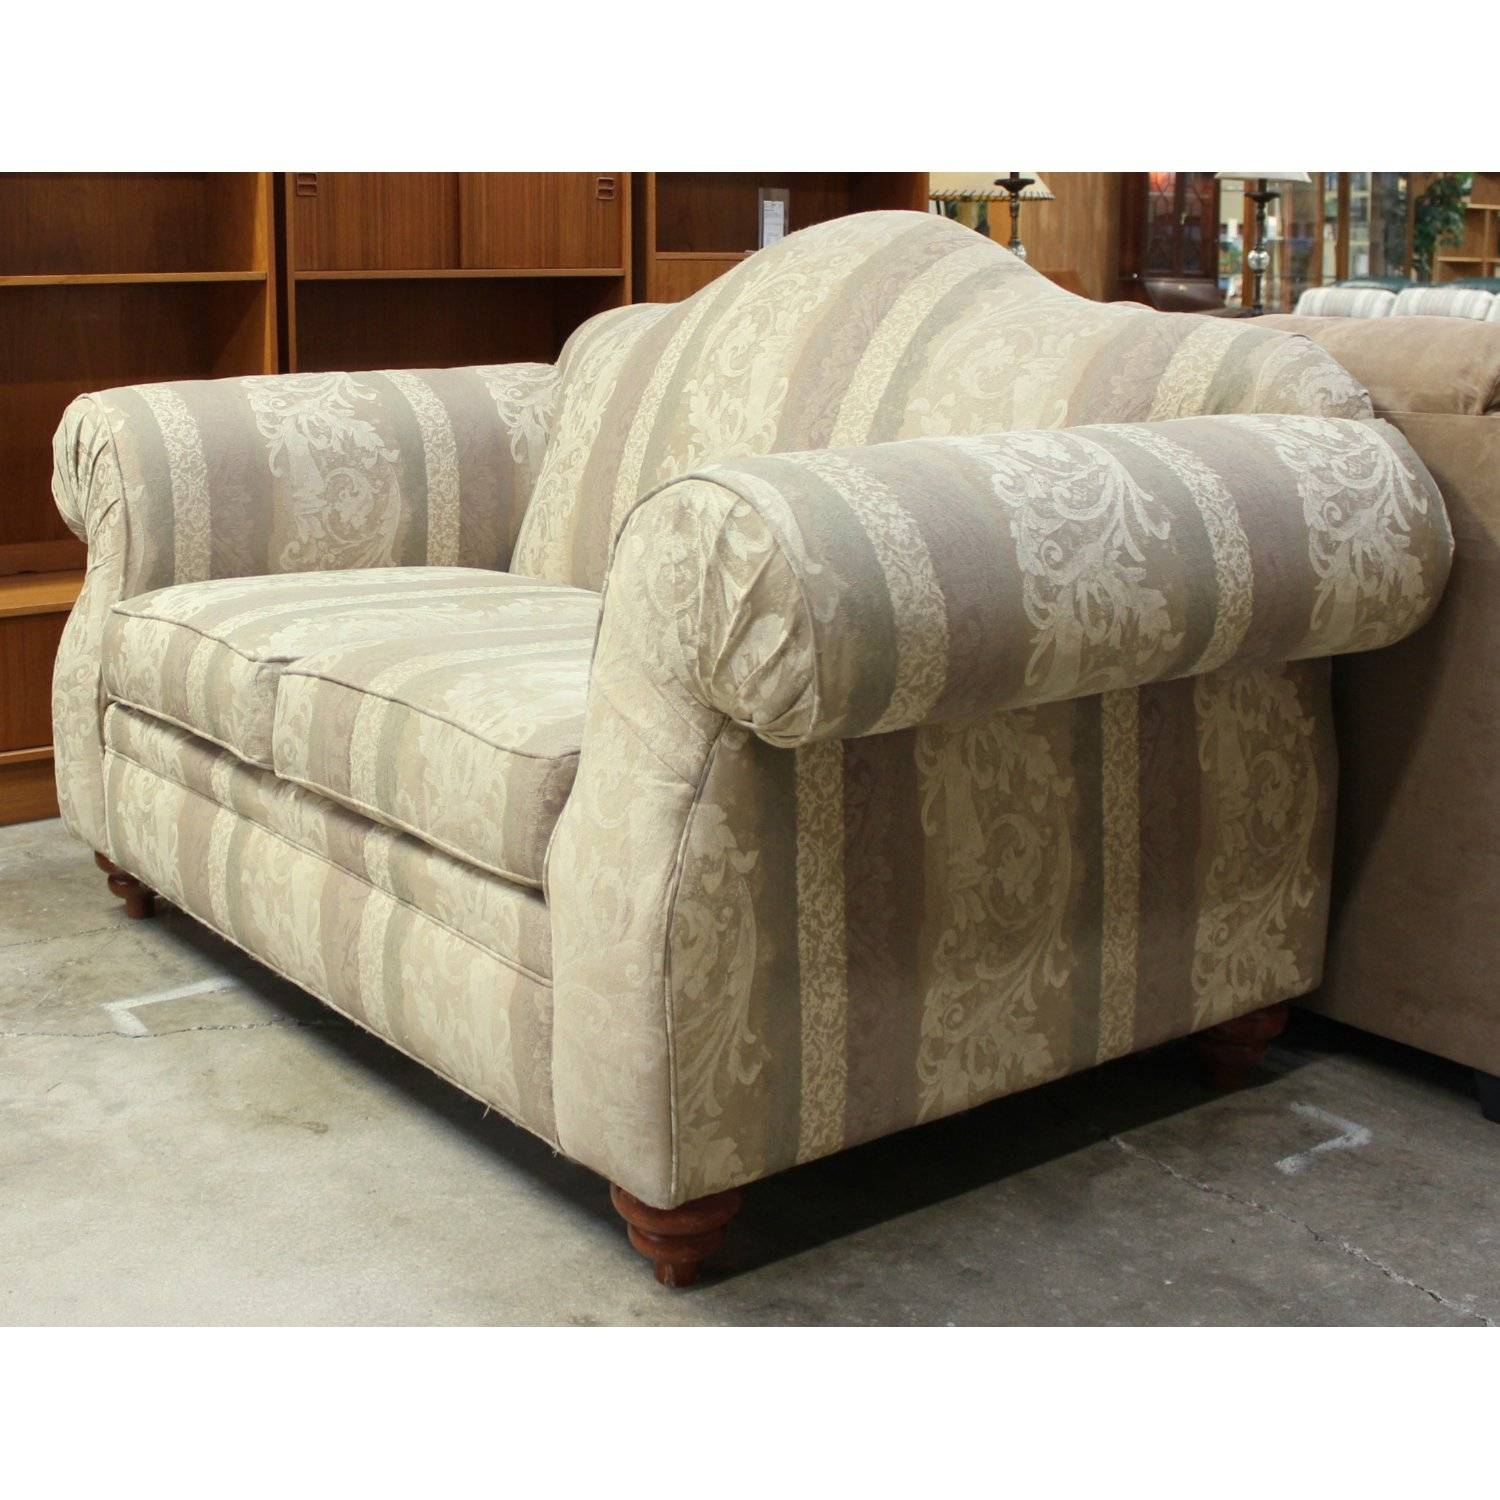 Alan White Camelback Loveseat | Upscale Consignment regarding Alan White Sofas (Image 5 of 15)